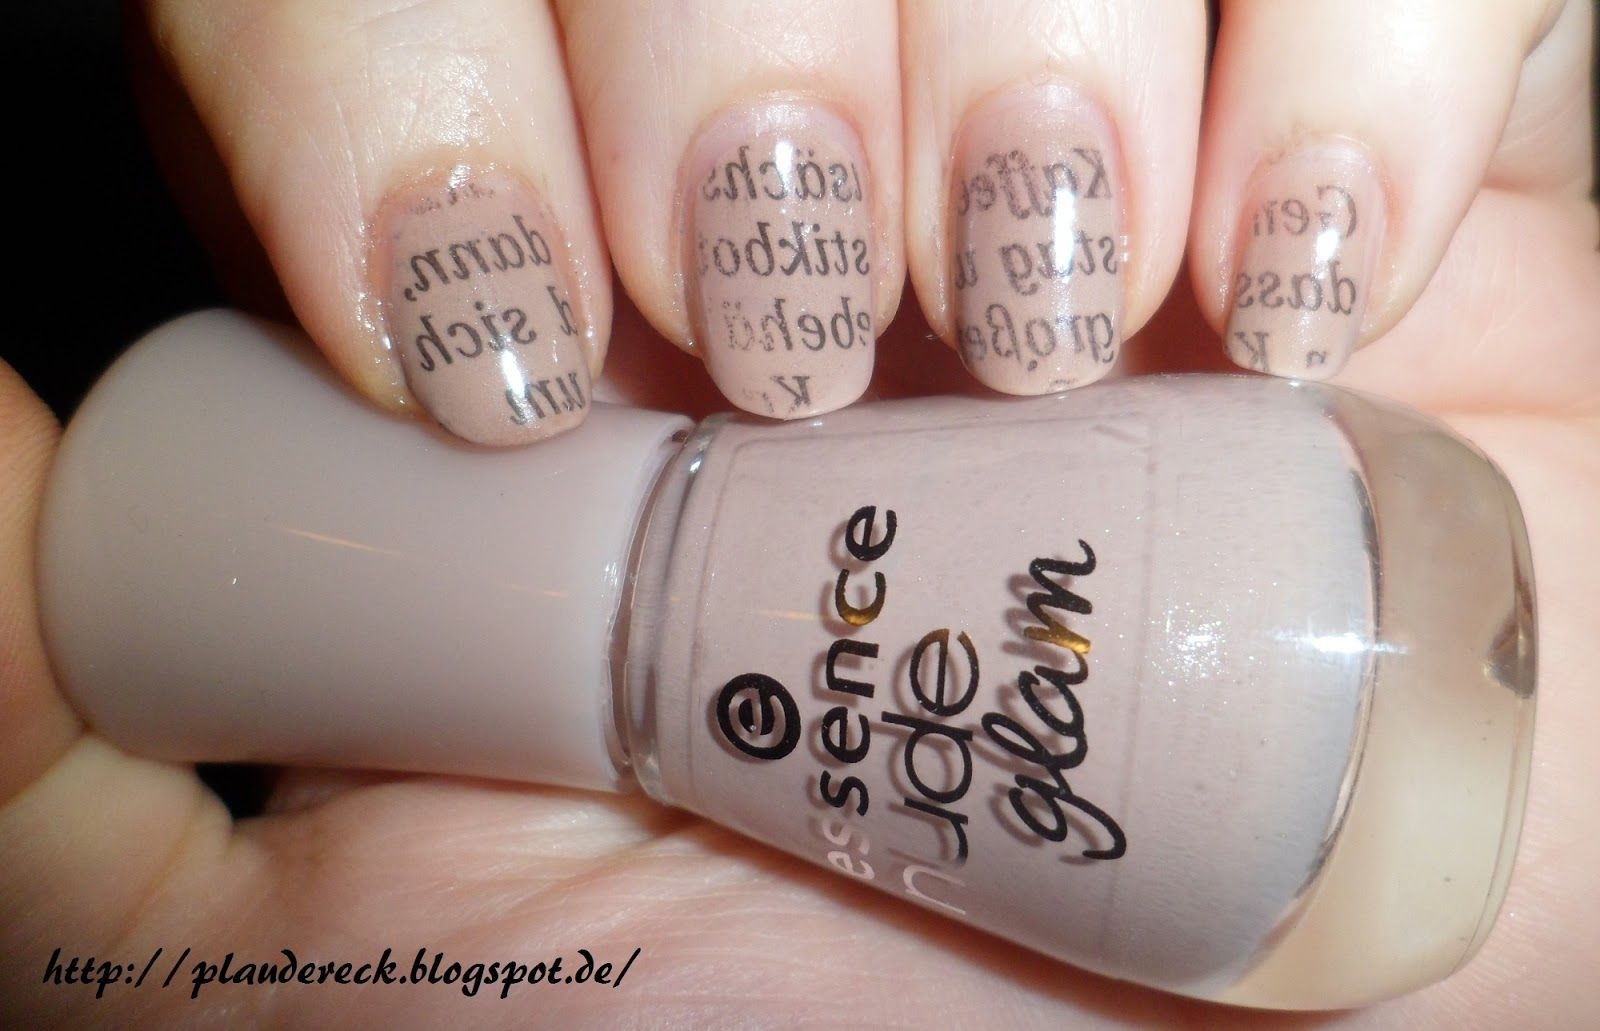 Plaudereck: Newspaper-Nails